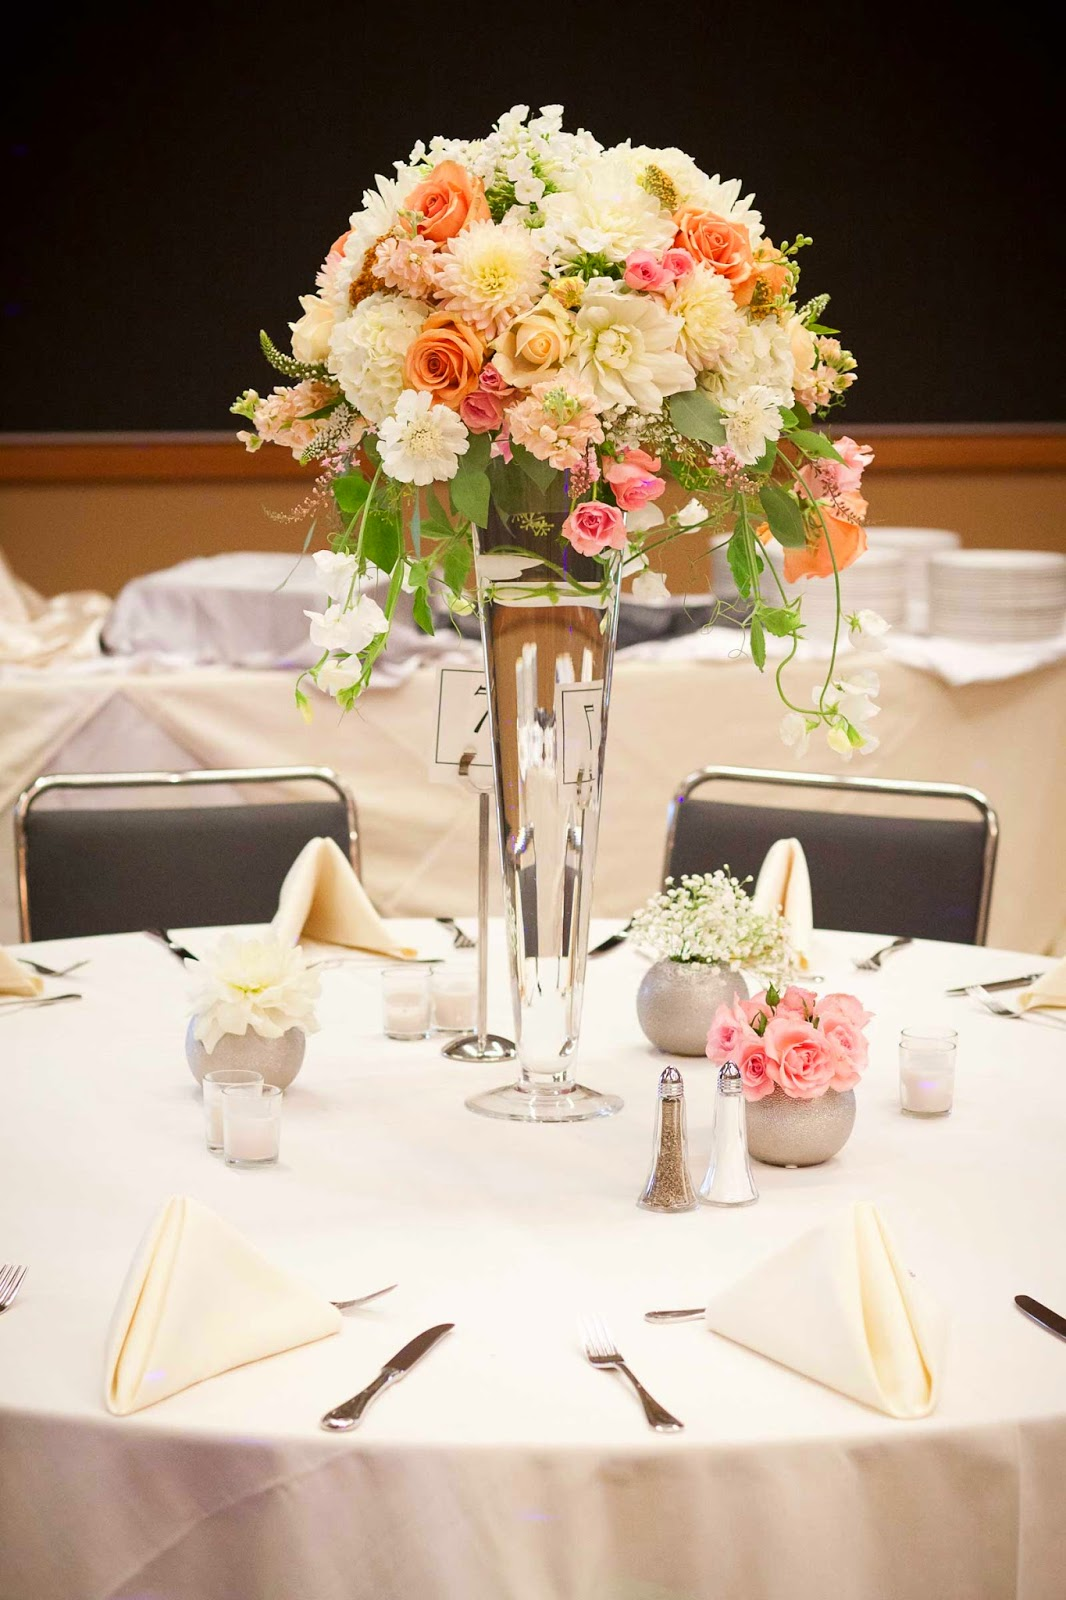 Best wedding centerpiece ideas diy centerpieces